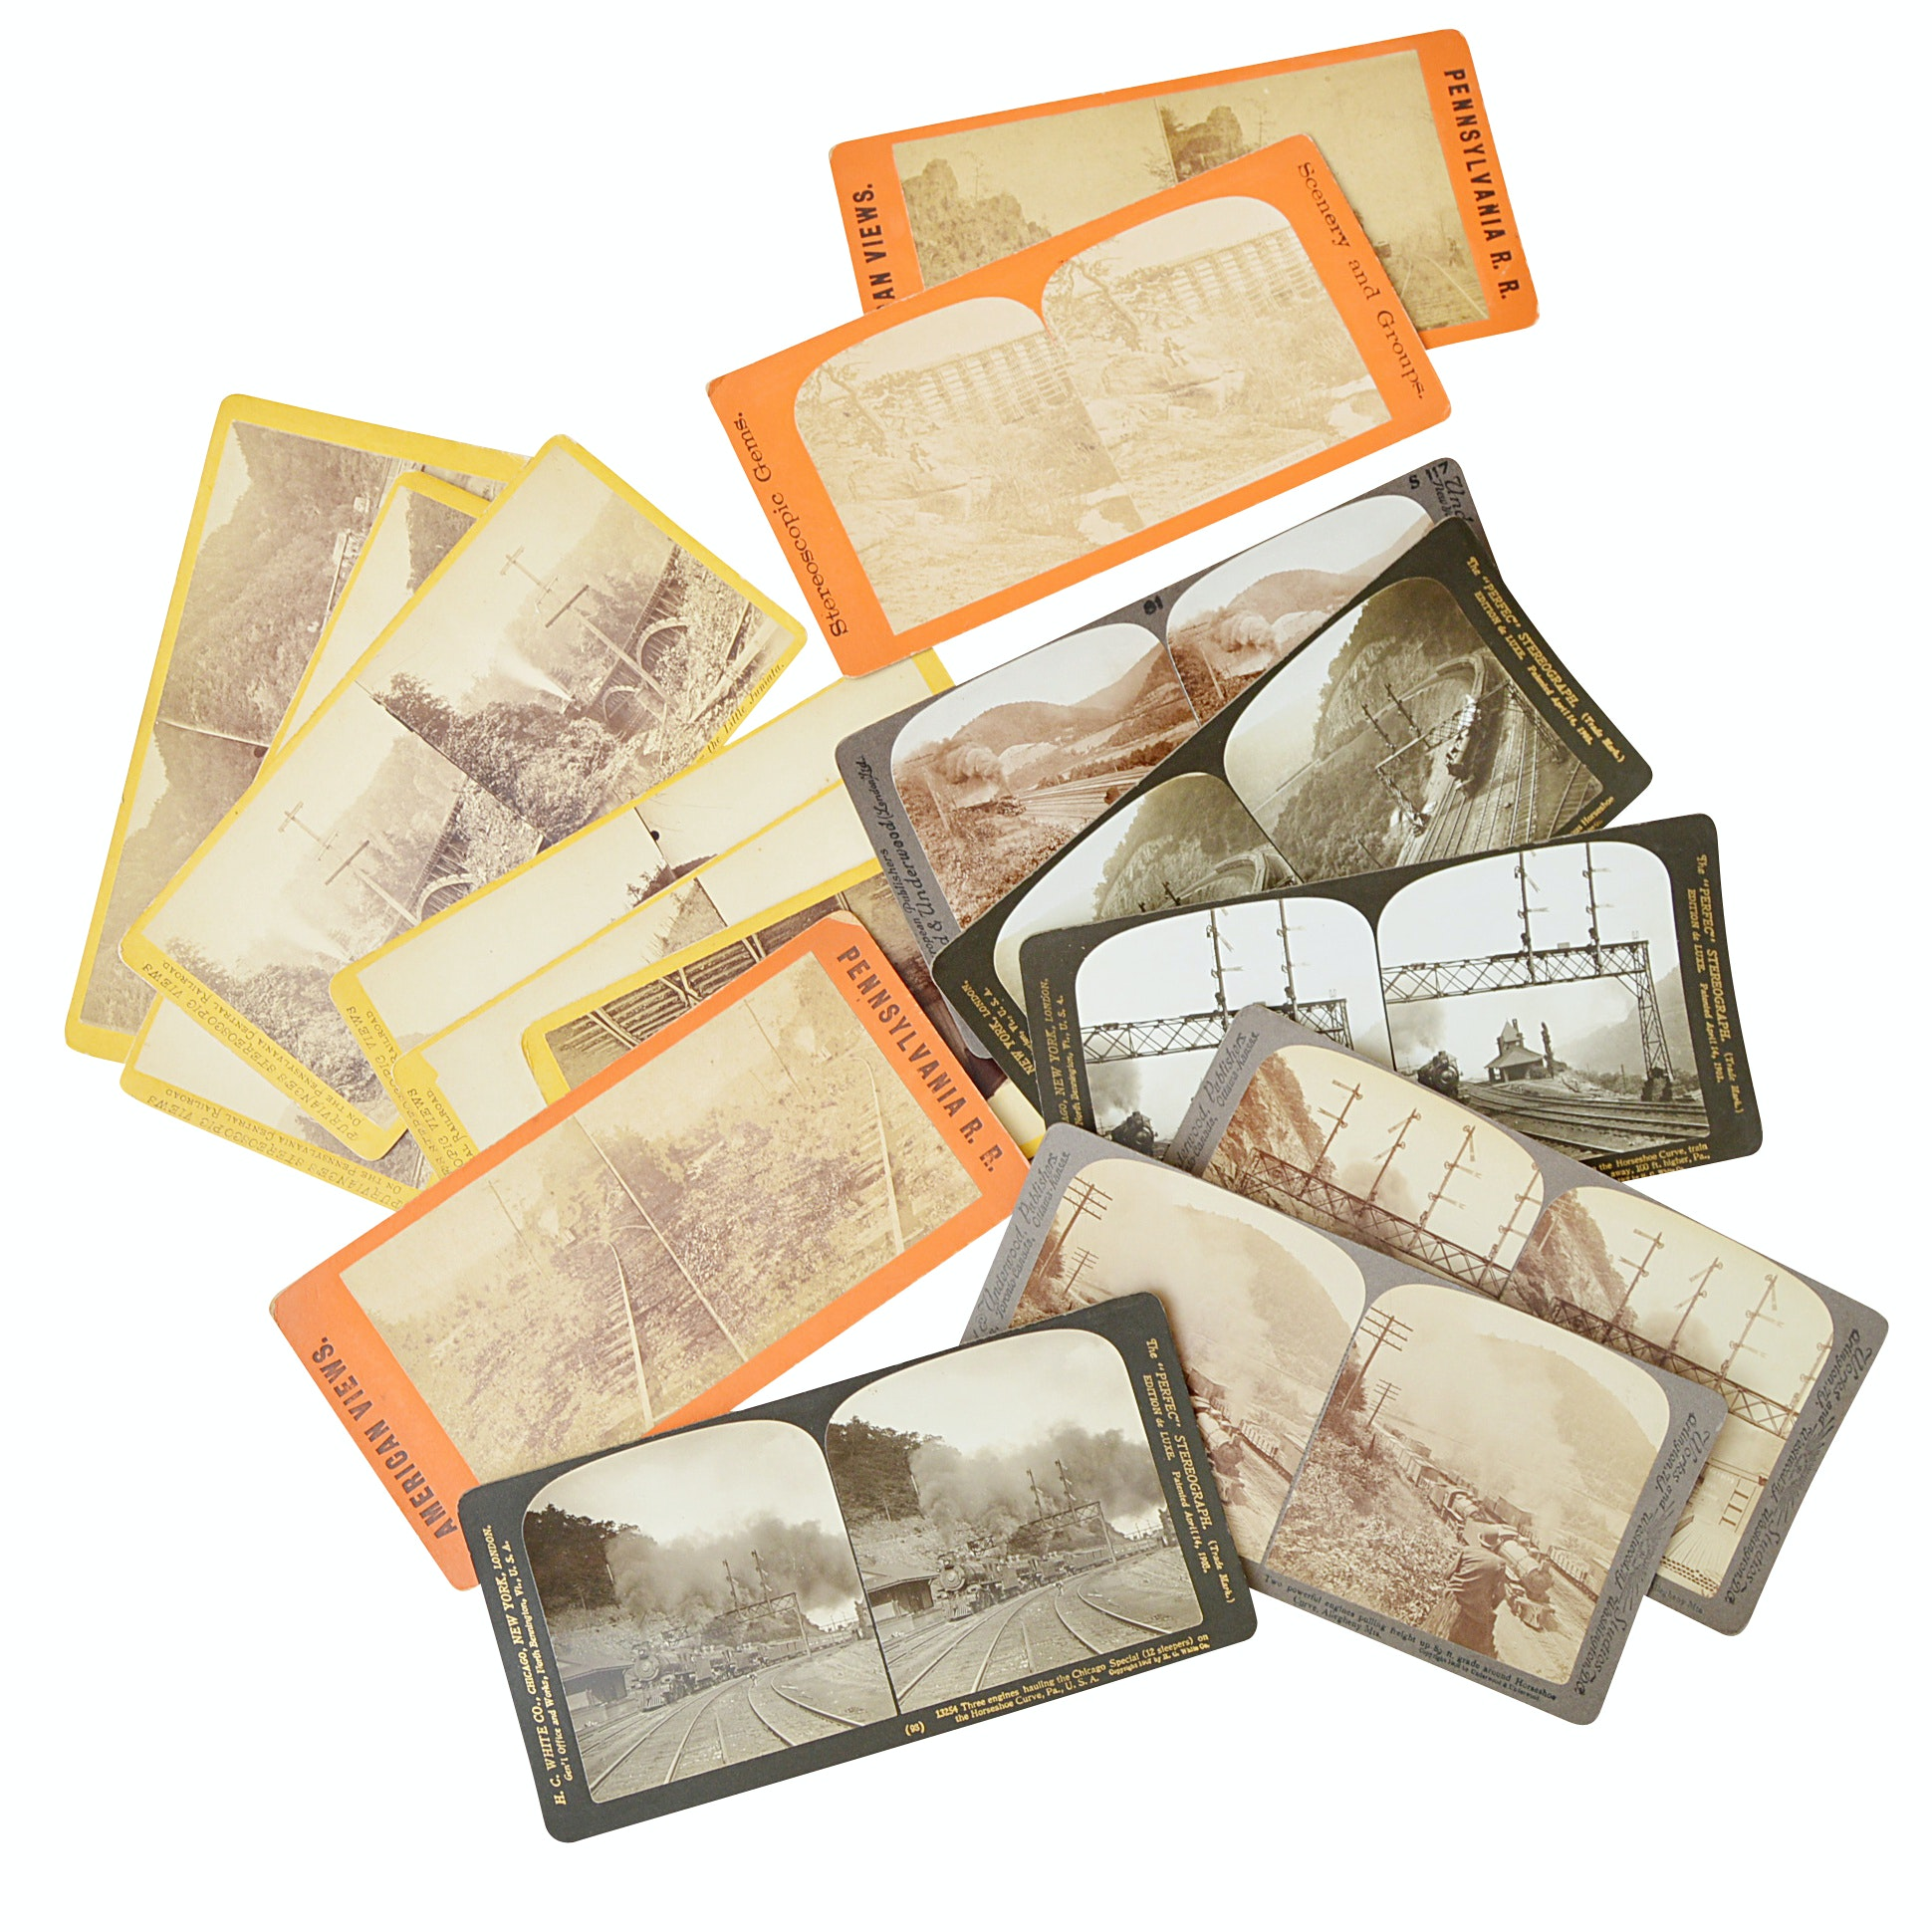 Vintage Stereoscopic Cards with Railway Themes